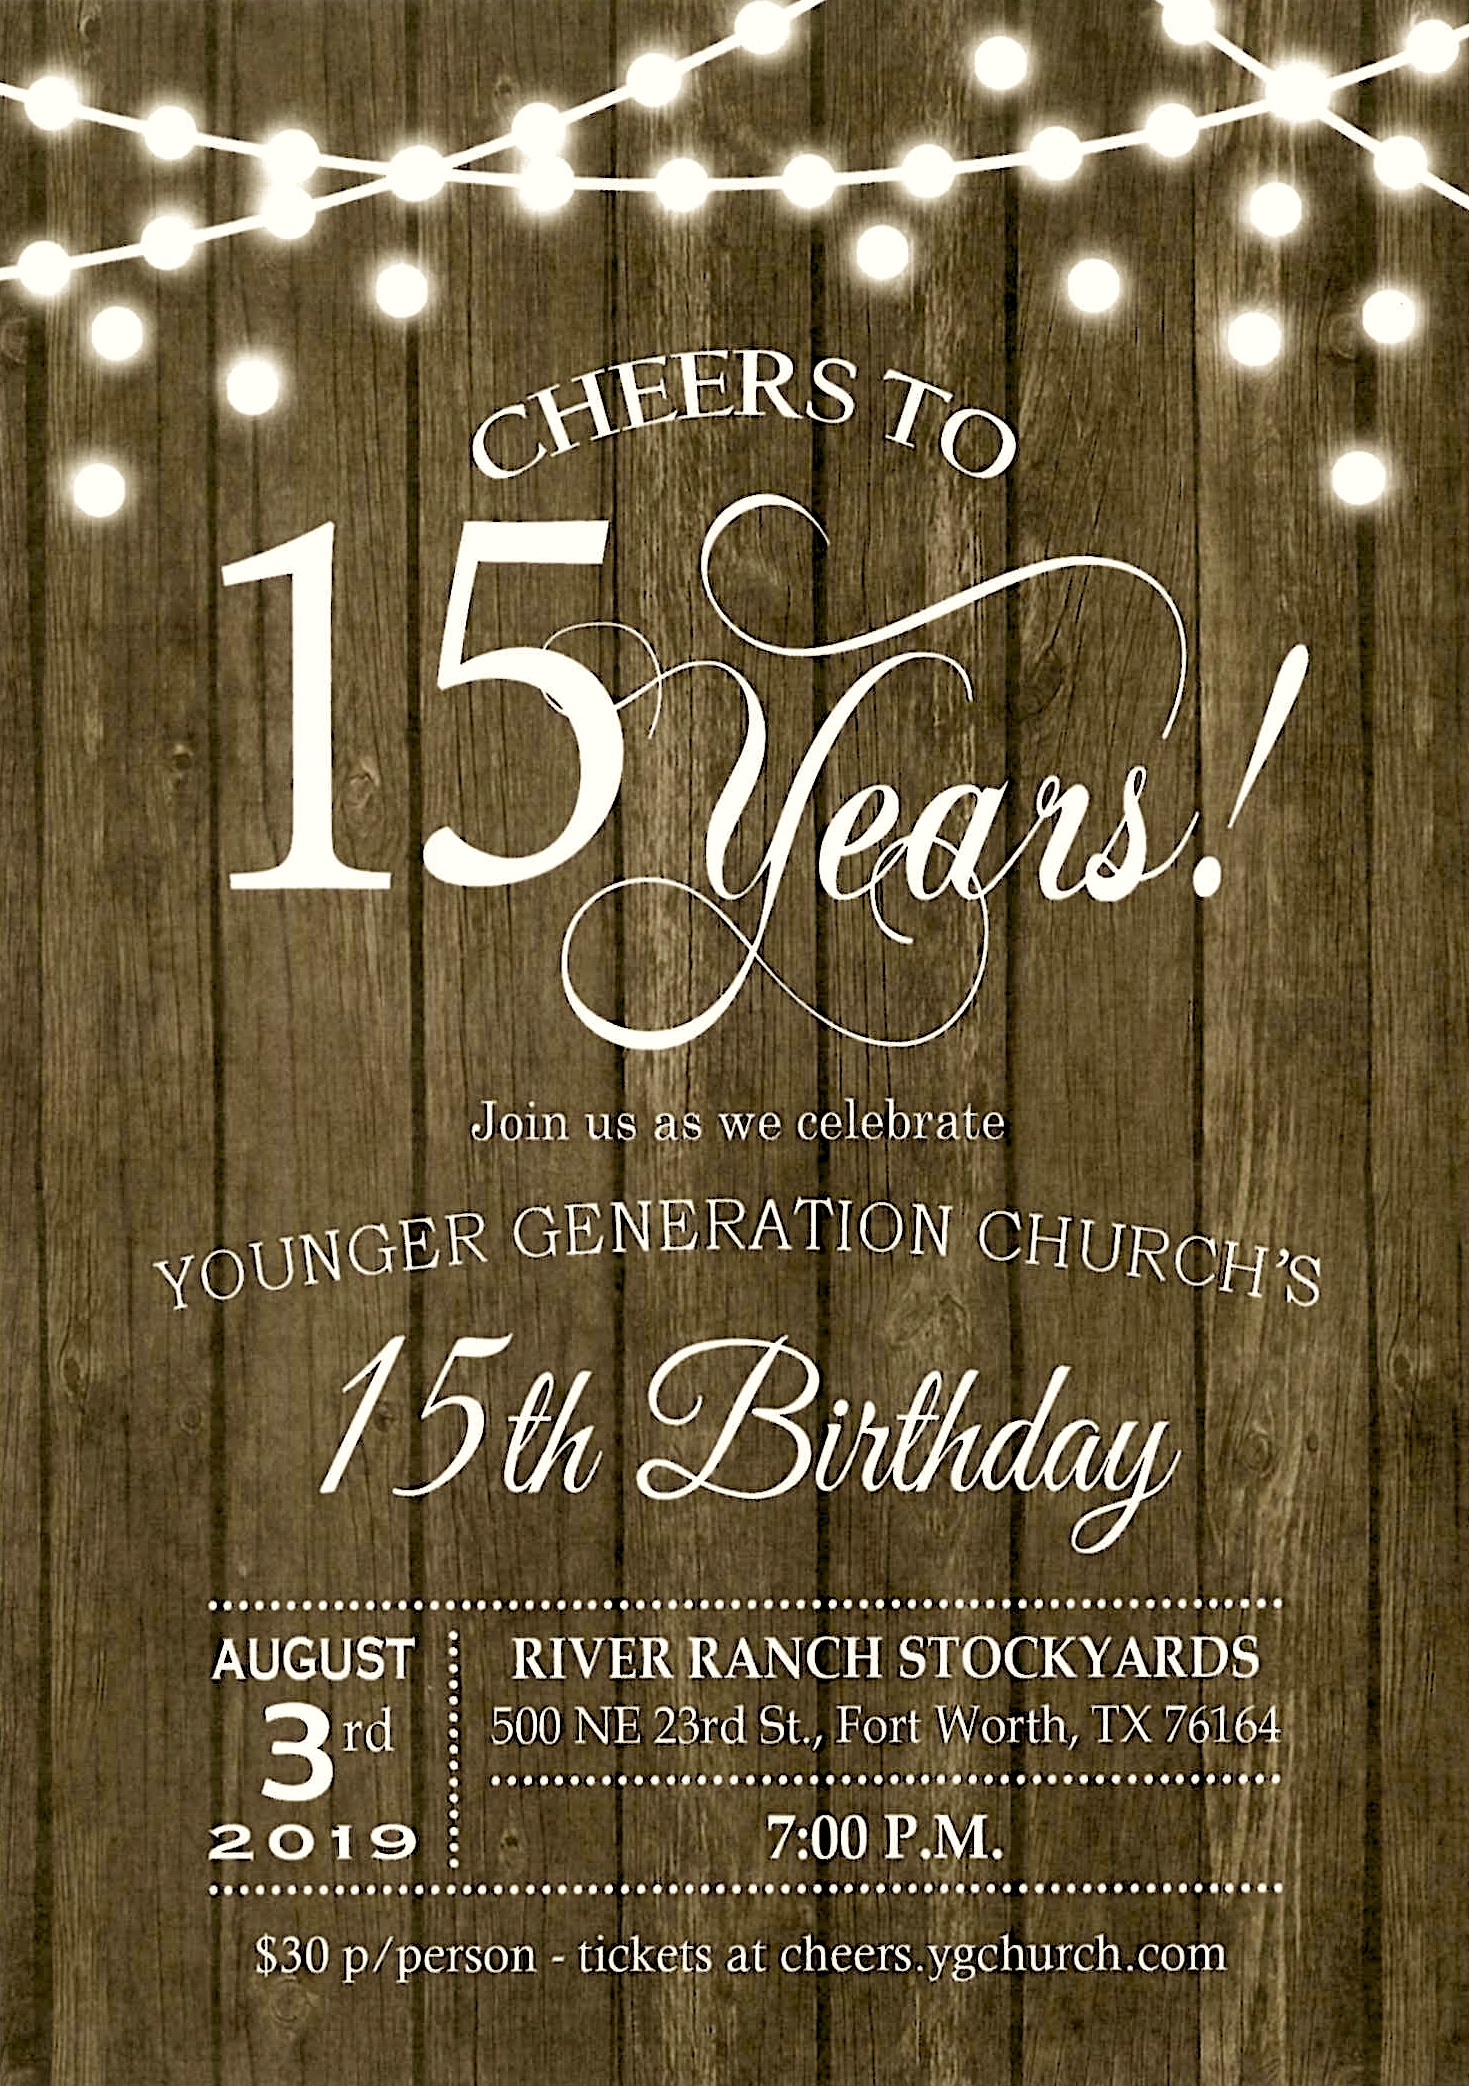 """You're Invited! - To culminate the day, all are invited to the """"Cheers to 15 Years"""" birthday party, Saturday evening. Hosted at the River Ranch Stockyards in Fort Worth, the event begins at 7:00 PM and will feature great food, special messages from former YGers and a grand salute to YG. For tickets to the """"Cheers to 15 Years"""" birthday party, visit cheers.ygchurch.com"""